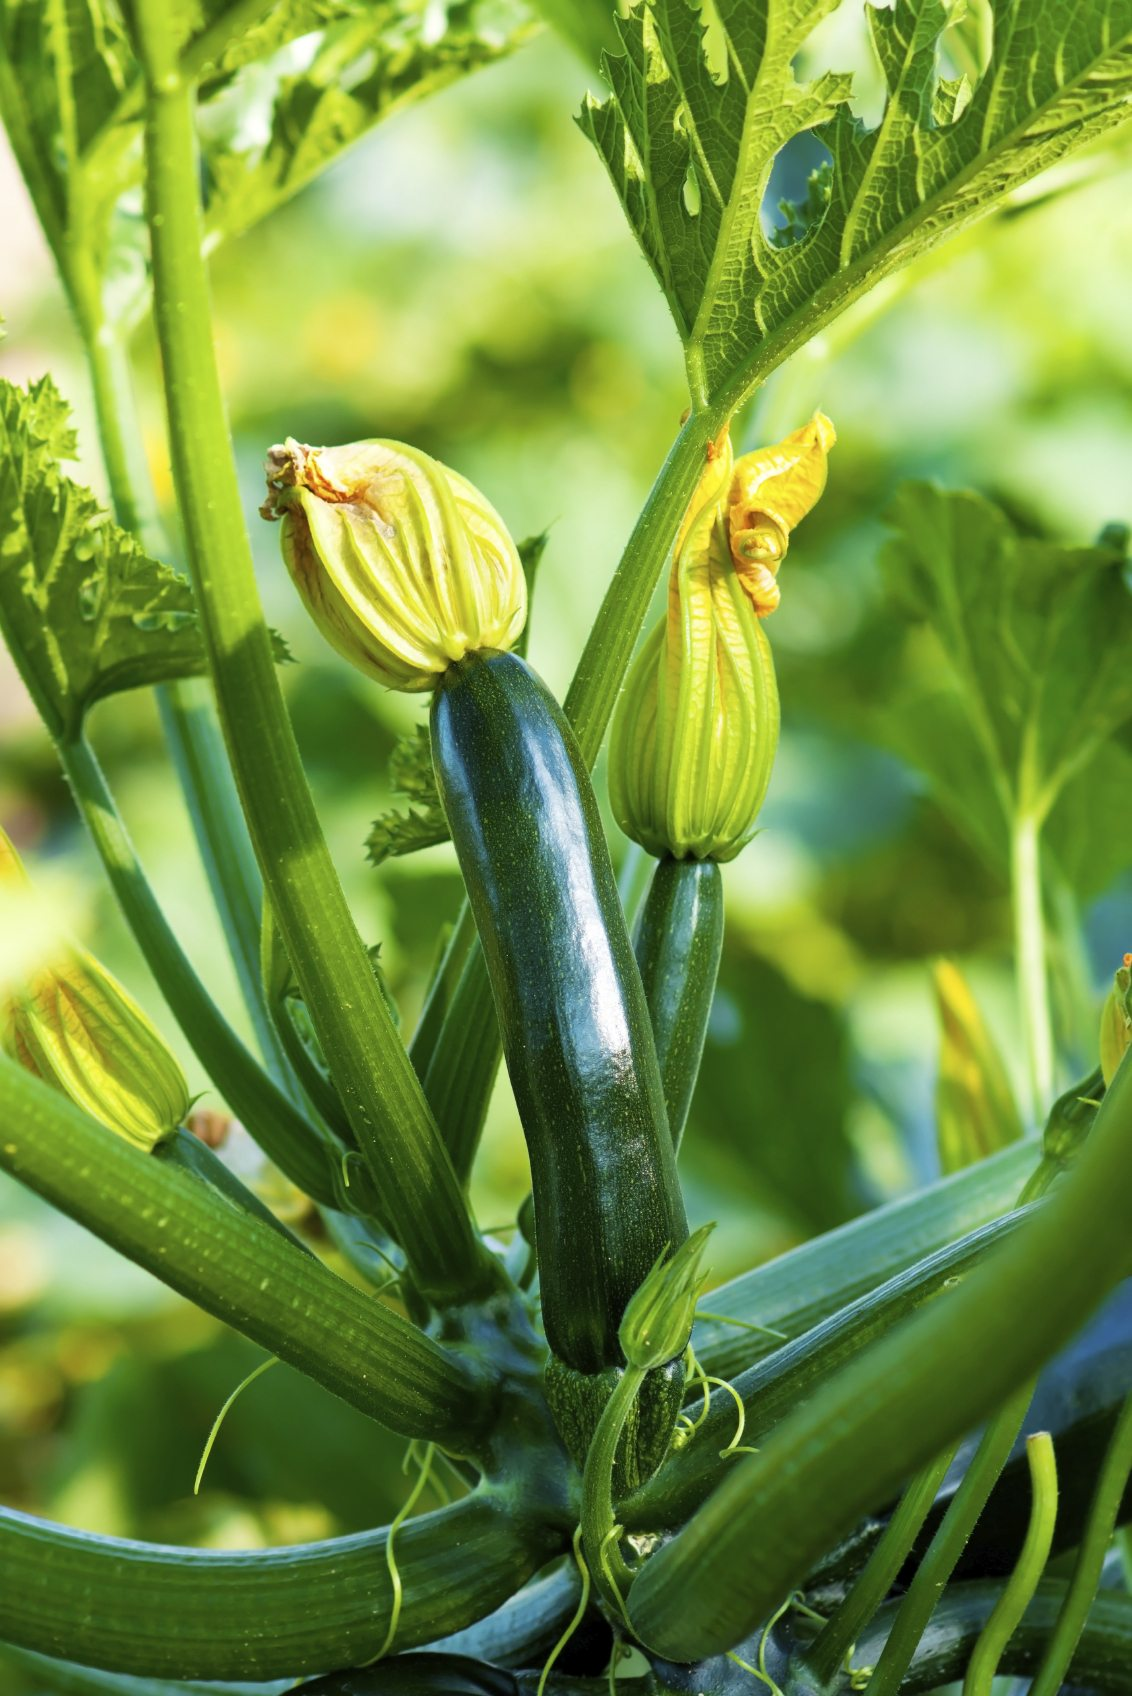 Zucchini Plant Images